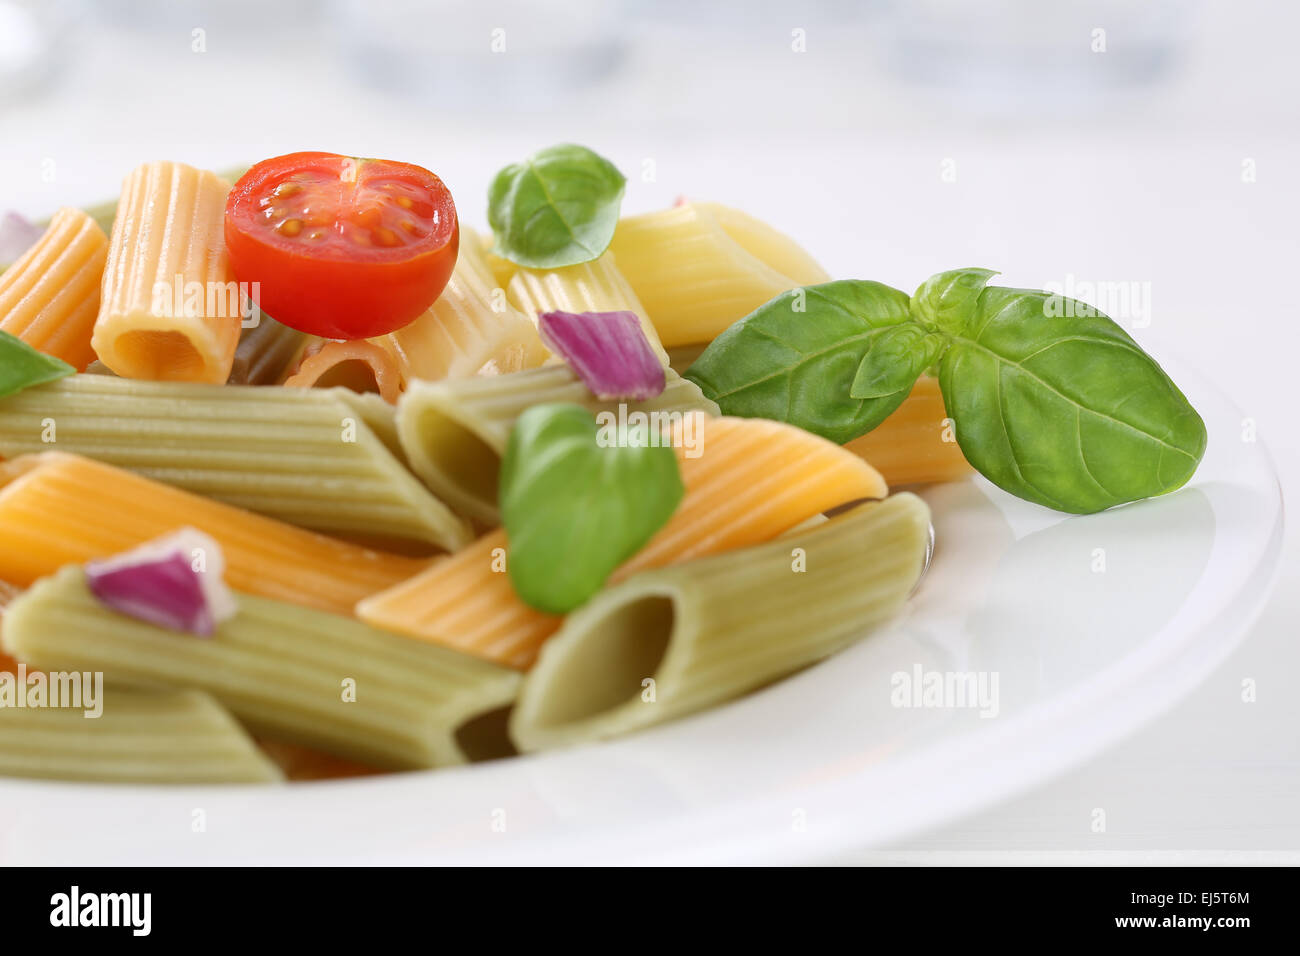 Colorful Penne Rigate noodles pasta meal with tomatoes on a plate - Stock Image